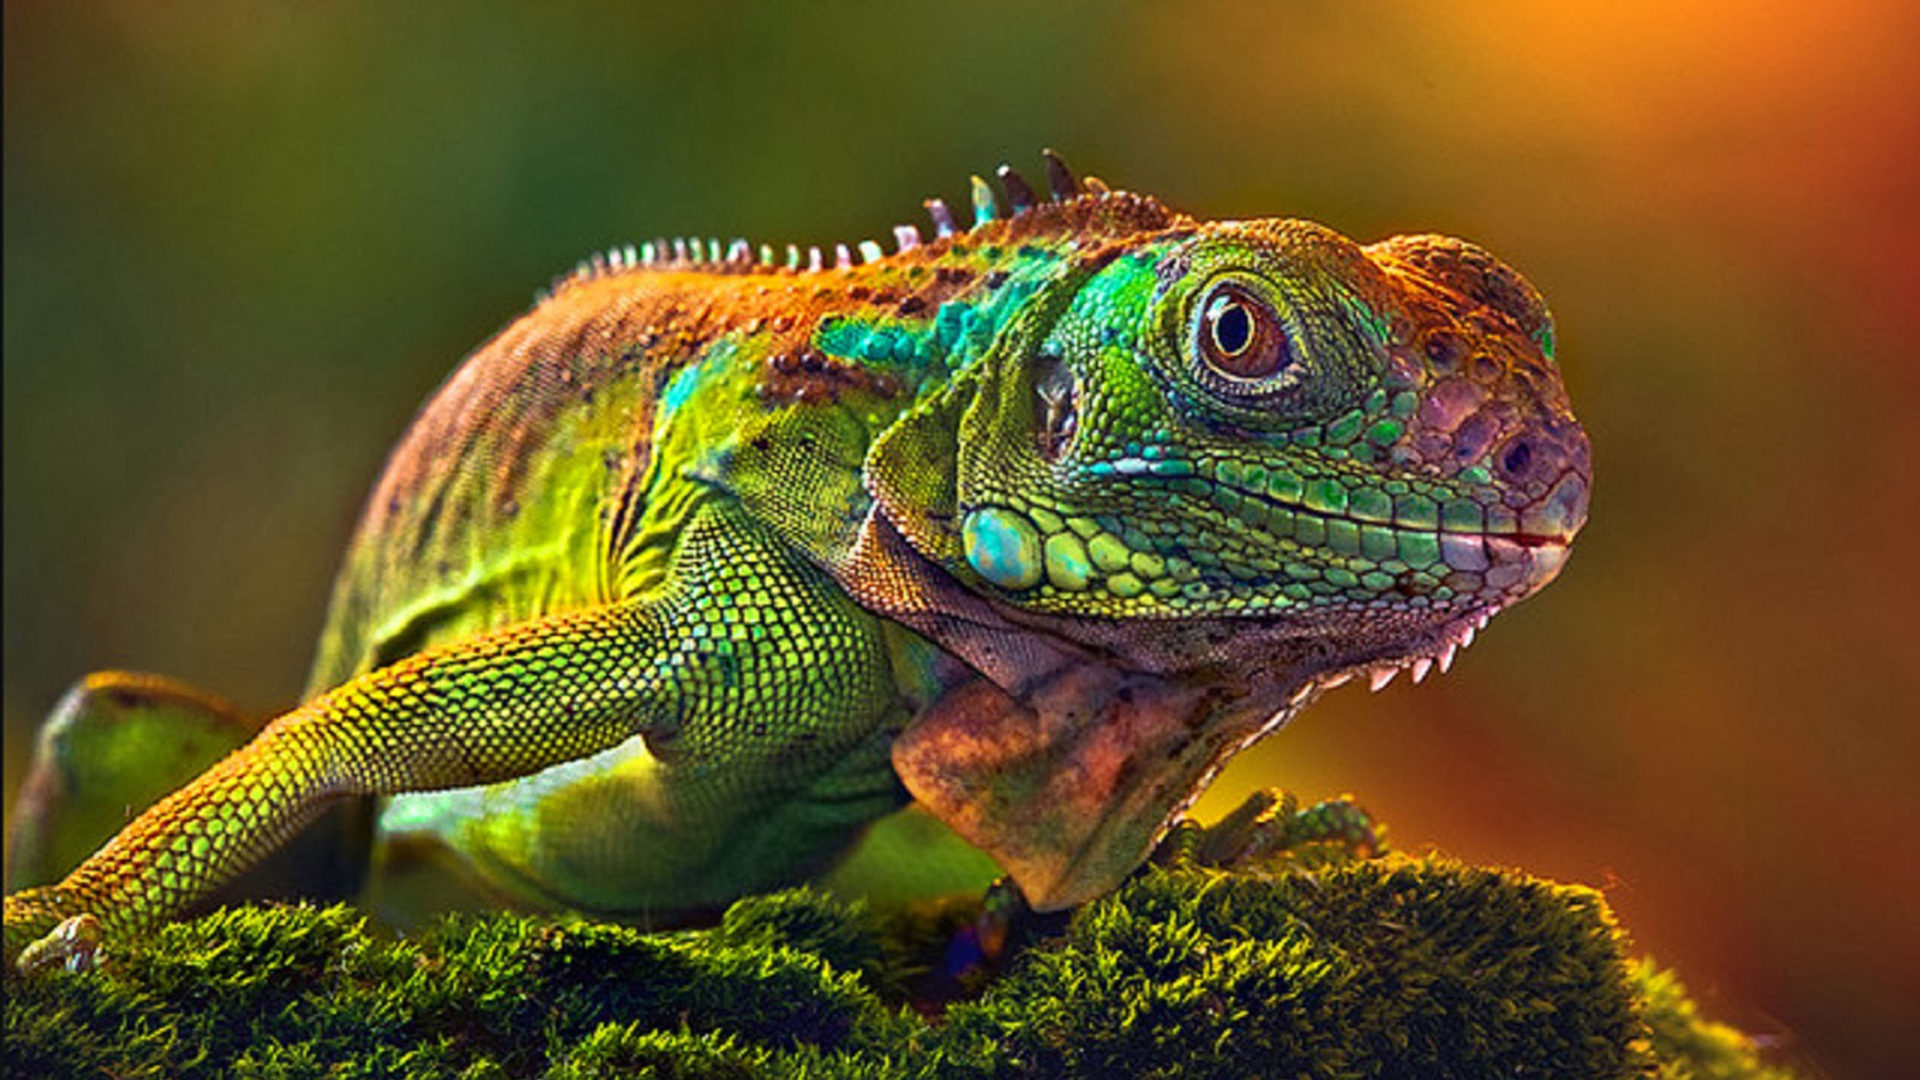 Wallpaper Hd Camaleon Some Lizards Change Color Very